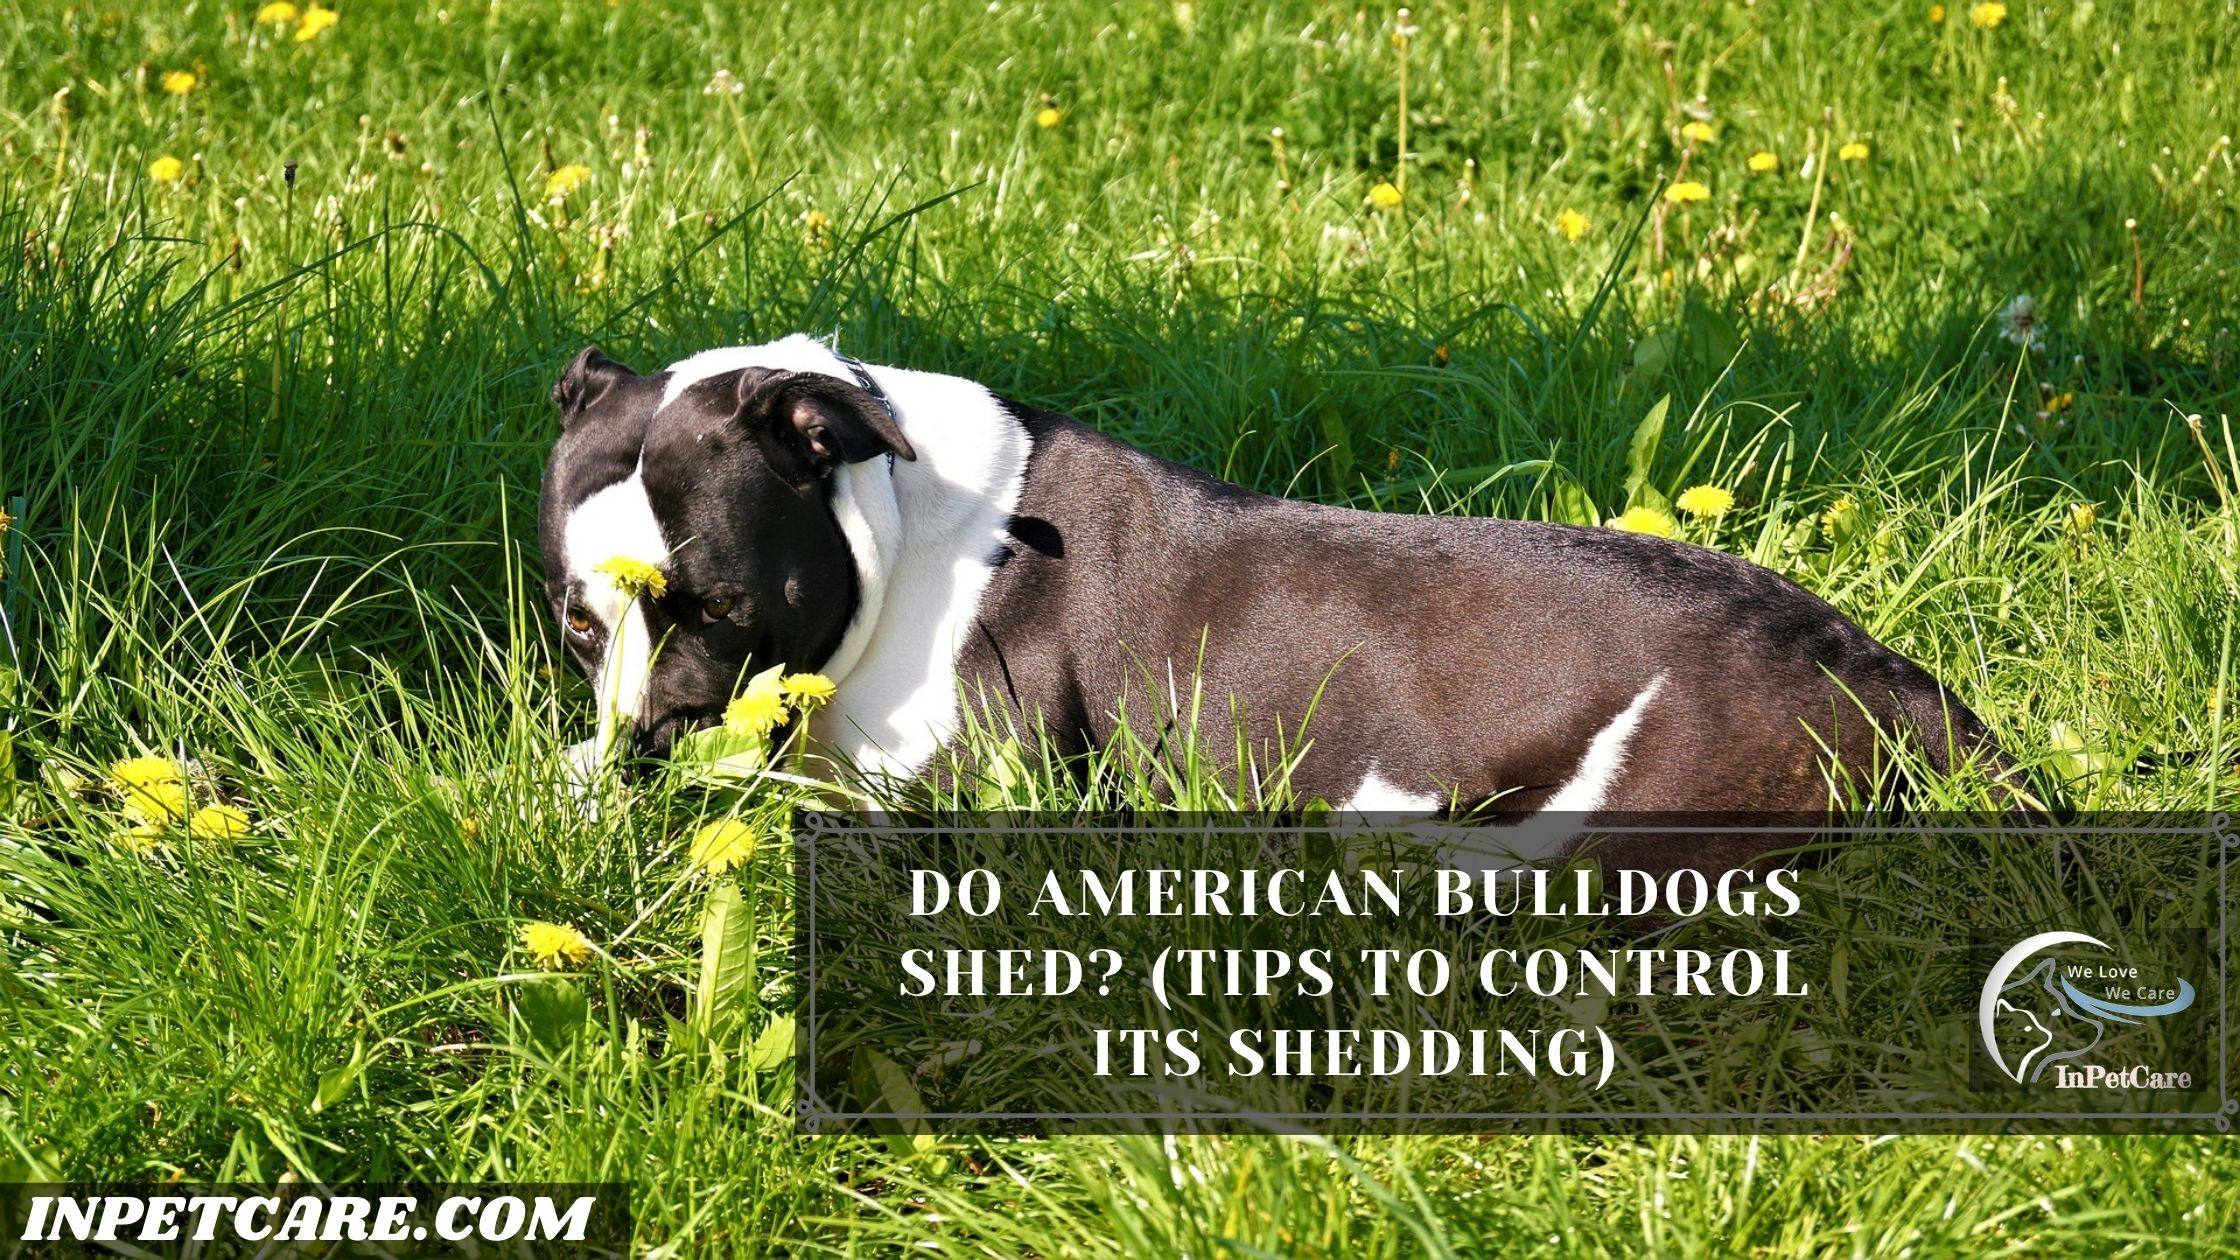 Do American Bulldogs Shed?